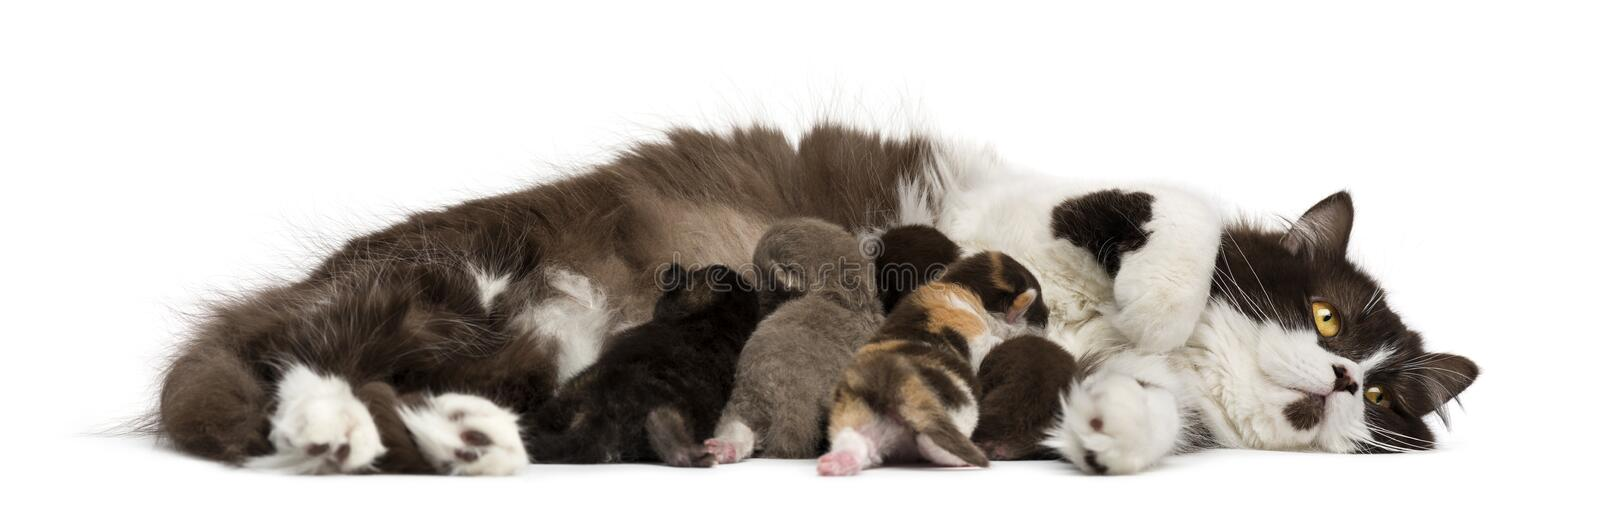 Side view of a British Longhair lying, feeding its kittens